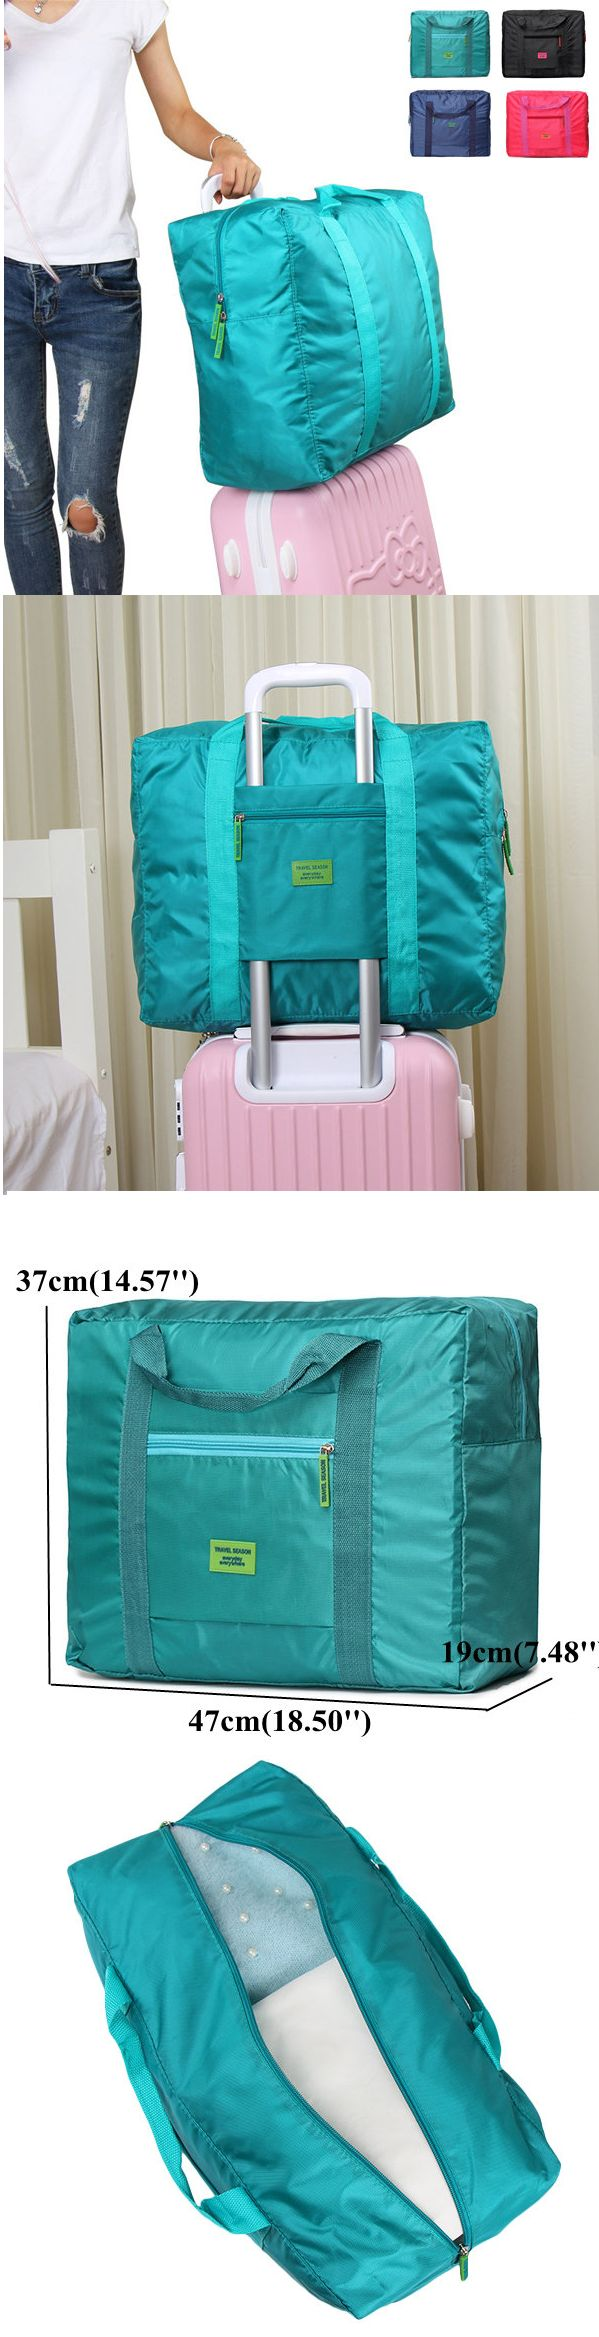 US$8.52 Four Colors Casual Nylon Waterproof Storage Bag Folding Travel Bag